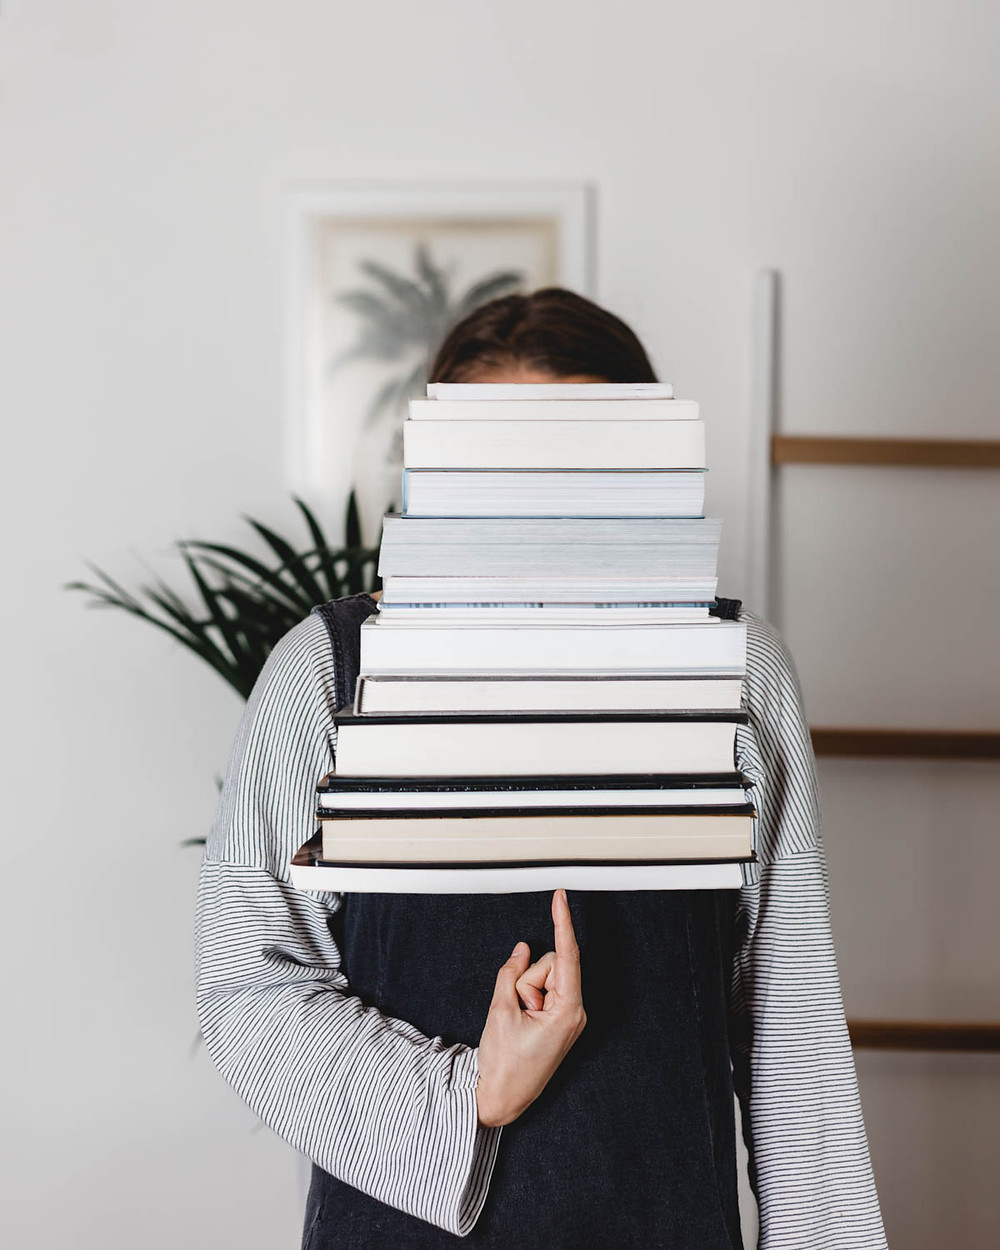 Girl Holding A Stack of Books